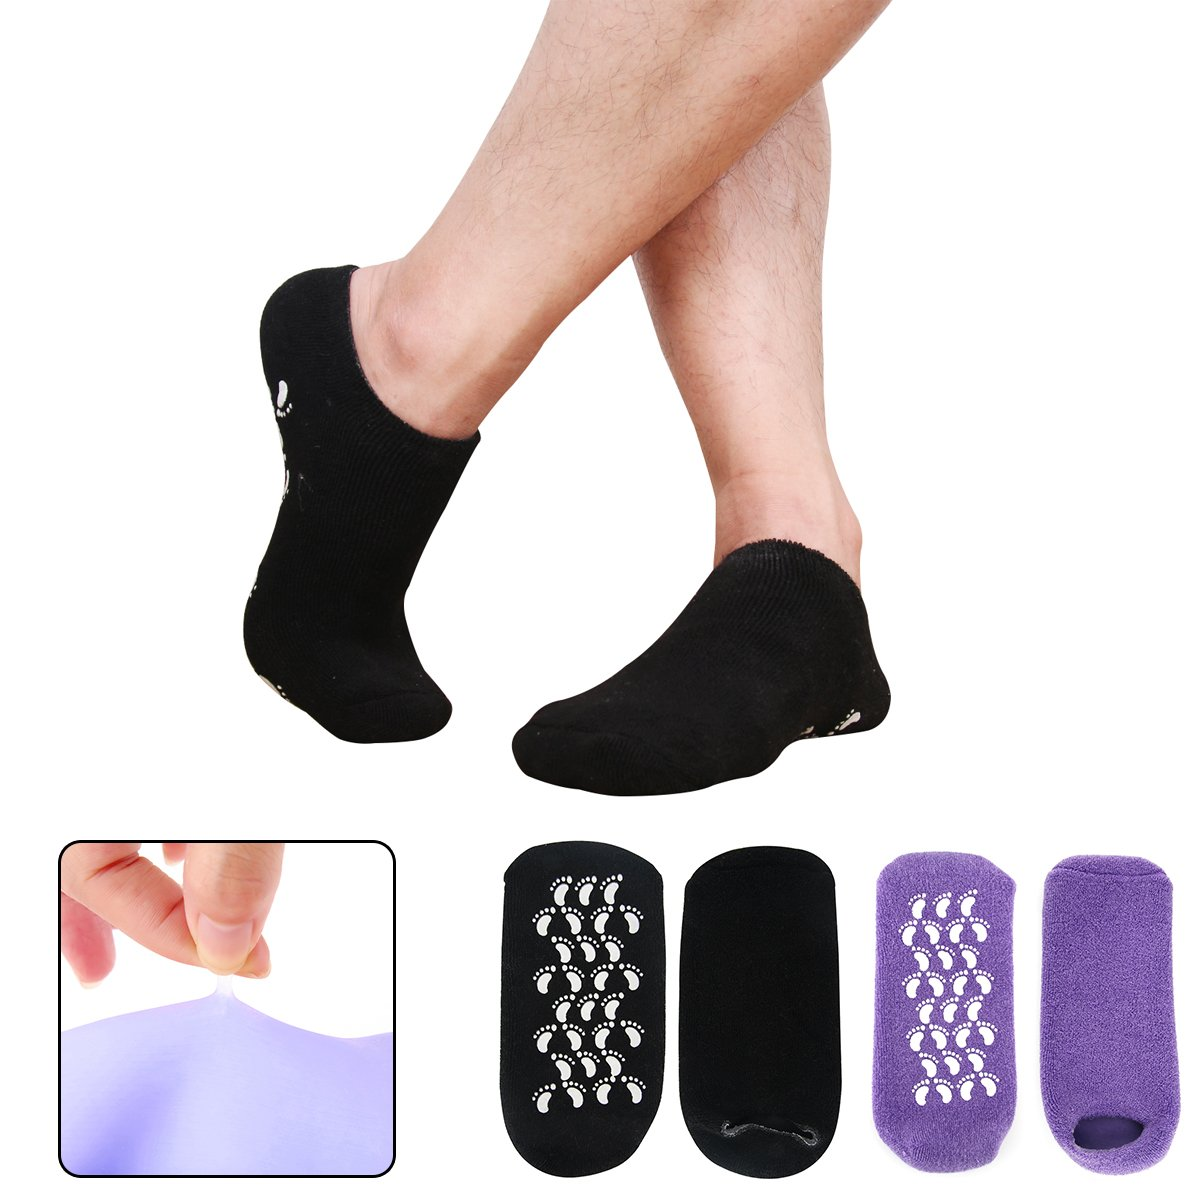 Codream Men's Moisturizing Gel Socks Men's Feet Care Ultimate Treatment for Dry Cracked Rough Skin on Feet with Spa Quality Botanical Gel Set of 2 Pairs Black and Purple Small